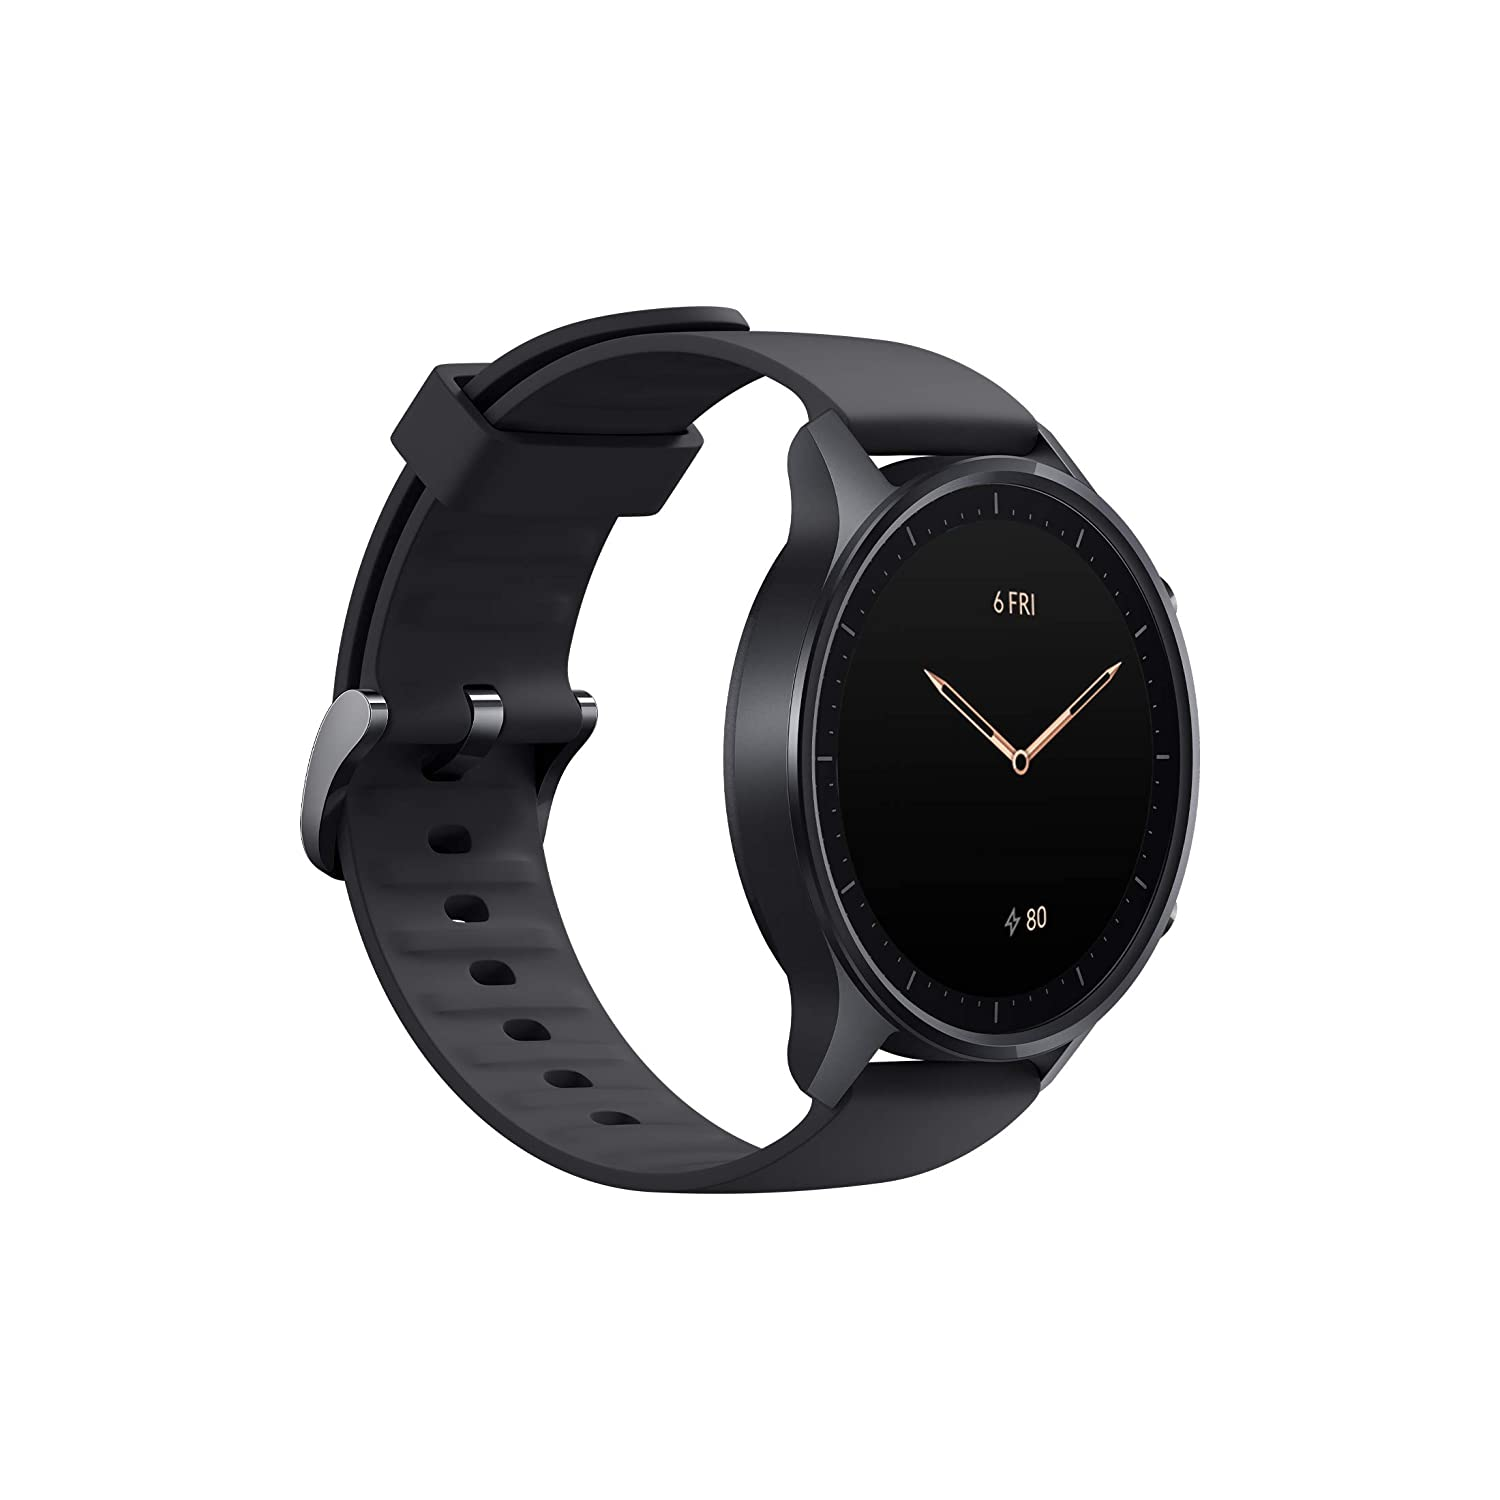 Mi Watch Revolve,1.39â? AMOLED Screen,5ATM Water Resistant,VO2 Max,First Beat Motion Algorithm,Stress & Sleep Management, Midnight Black